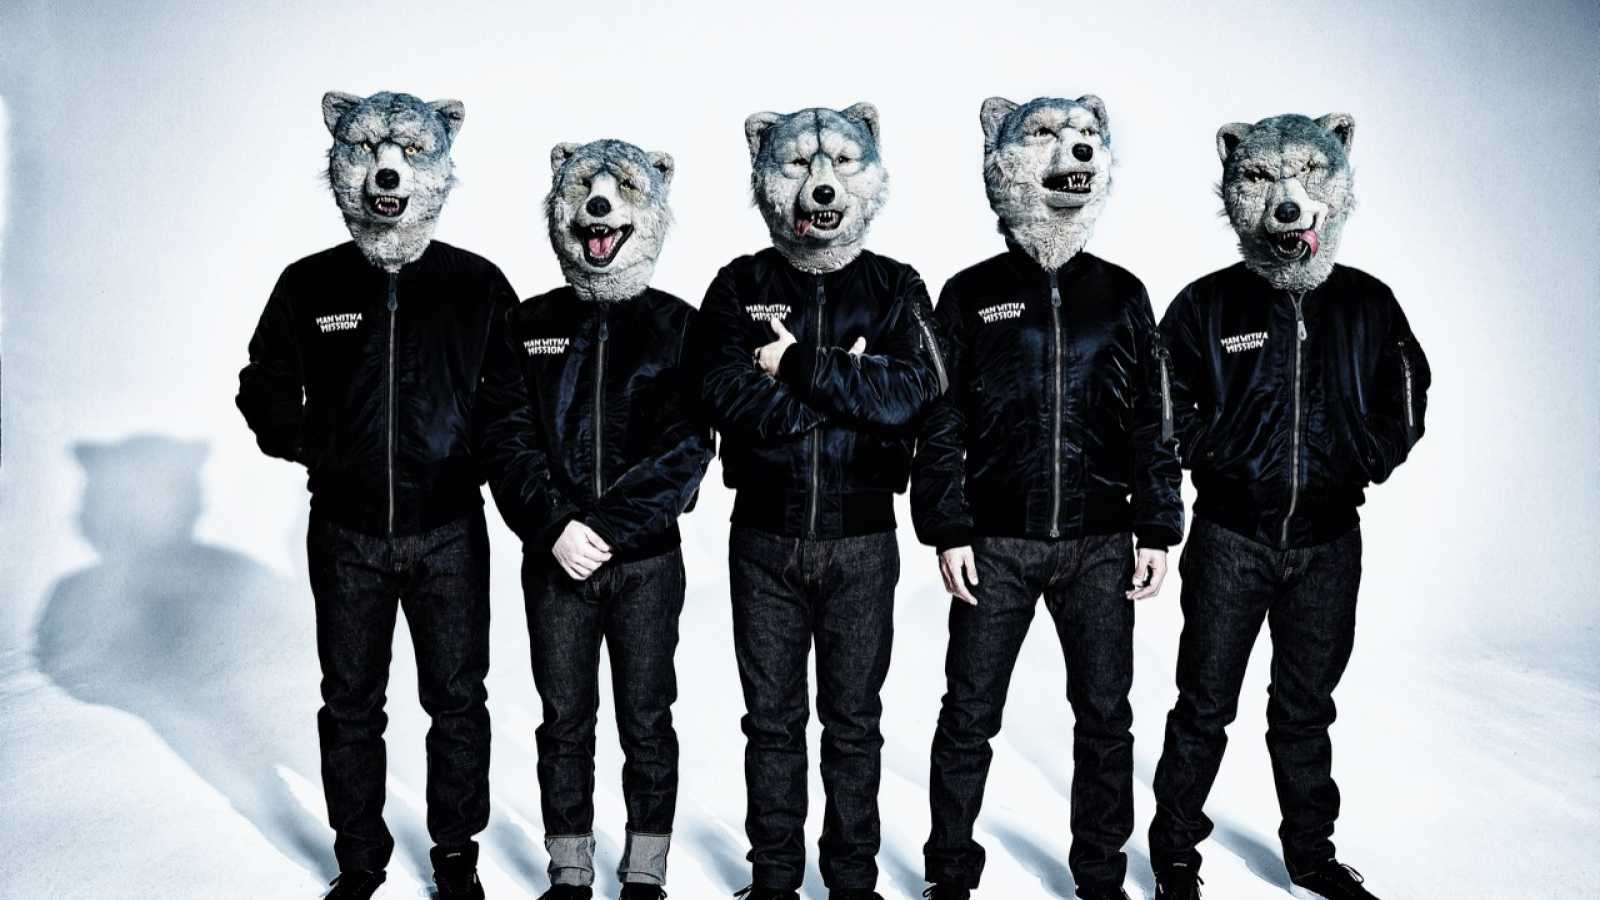 MAN WITH A MISSION Announces New Digital Single and Live Stream Concert © MAN WITH A MISSION. All rights reserved.